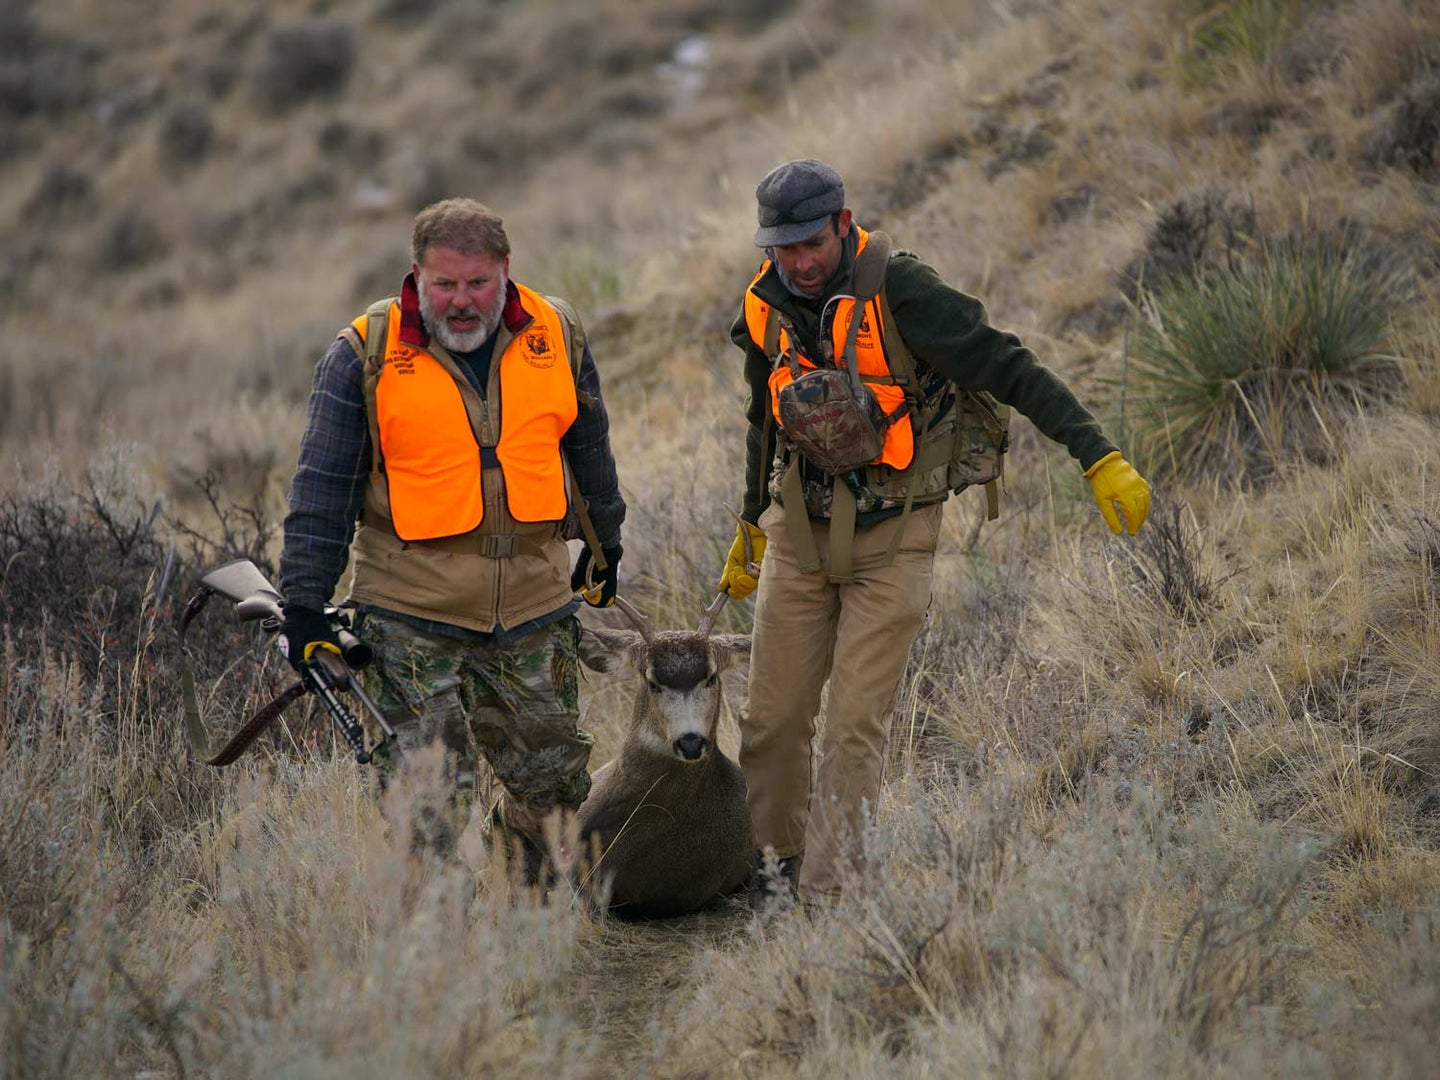 Two hunters dragging a deer through a field.